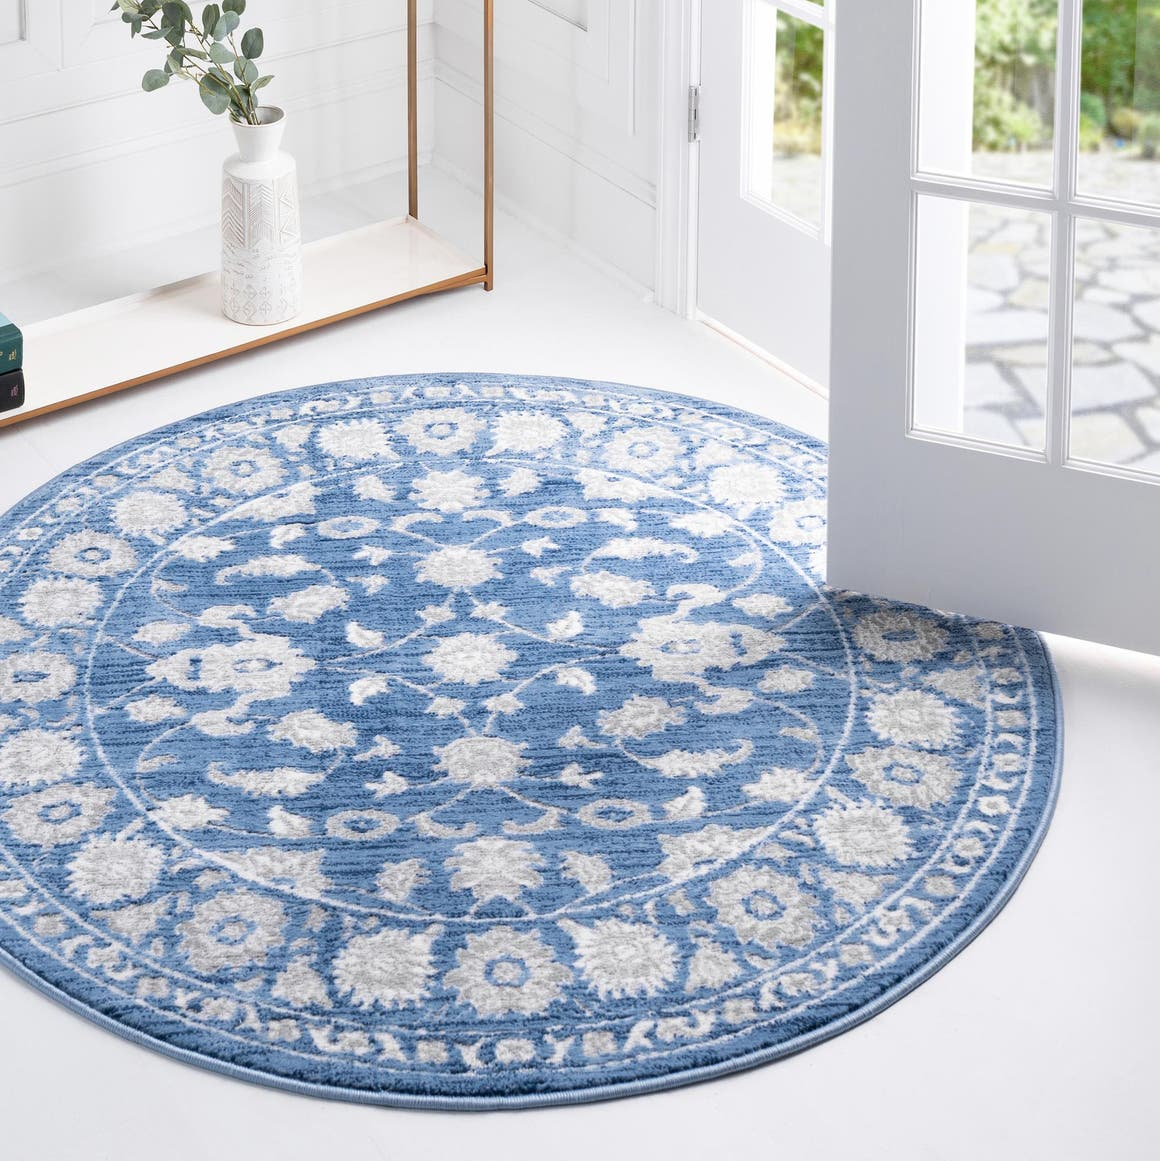 5' x 5' Boston Round Rug main image